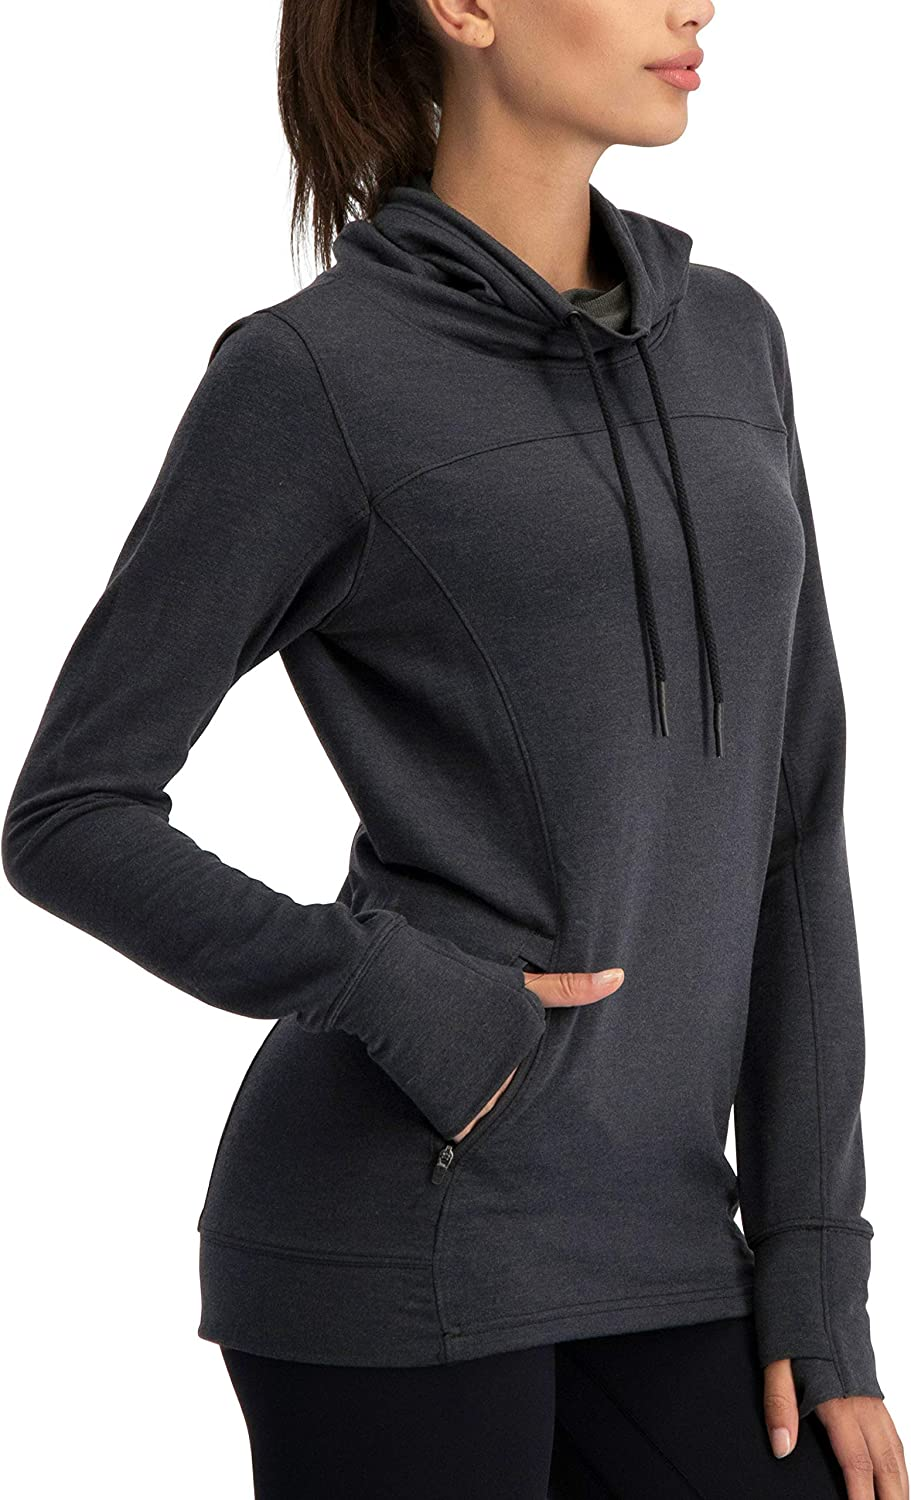 Dry Fit Running Pullover Womens - Fleece Cowl Neck Run Sweater Jacket - Zip Pockets and Thumbholes